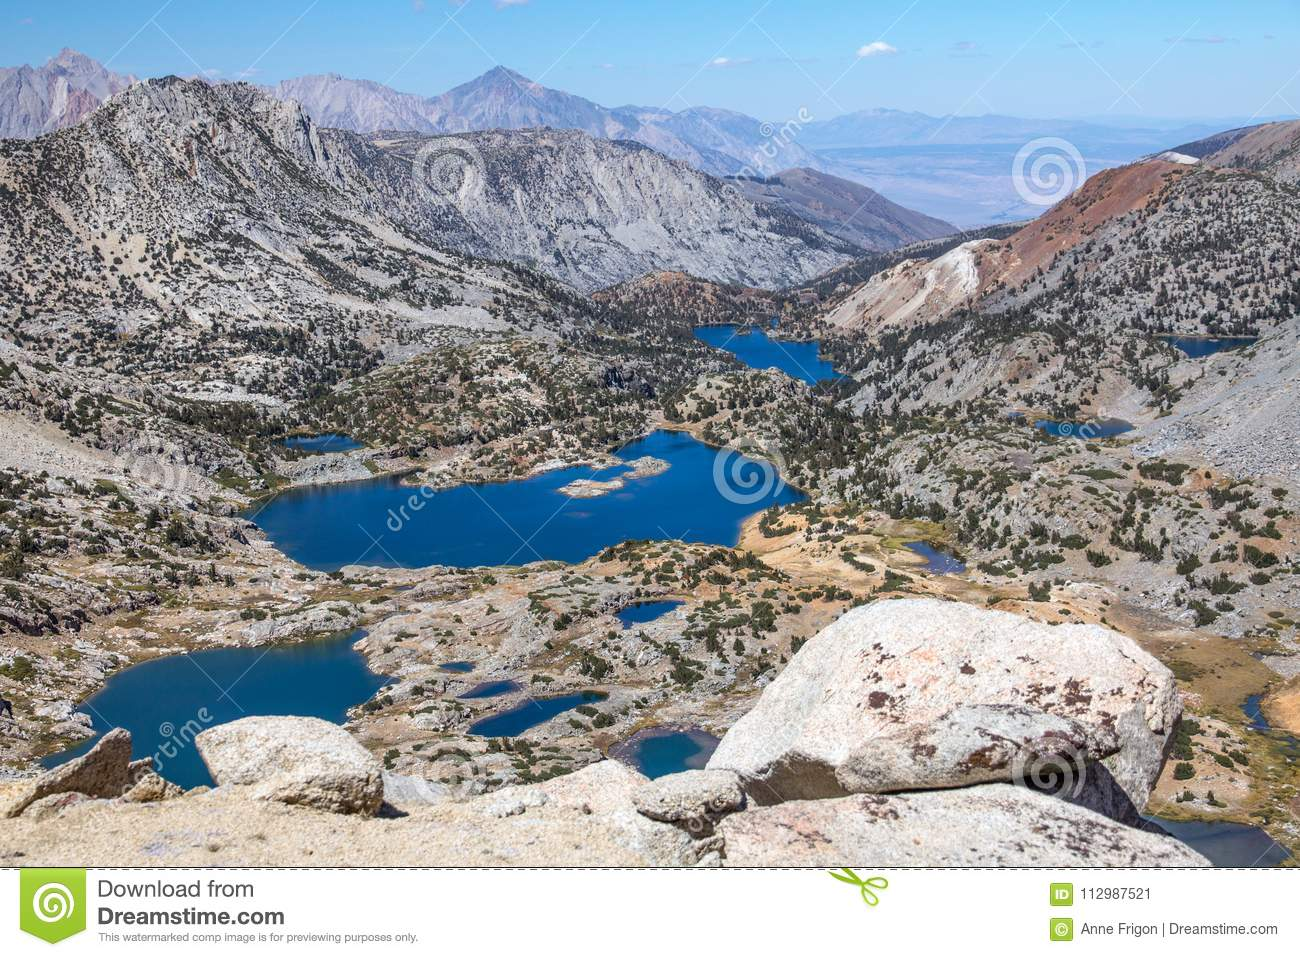 Eastern Sierra lakes from high on Bishop Pass trail, CA